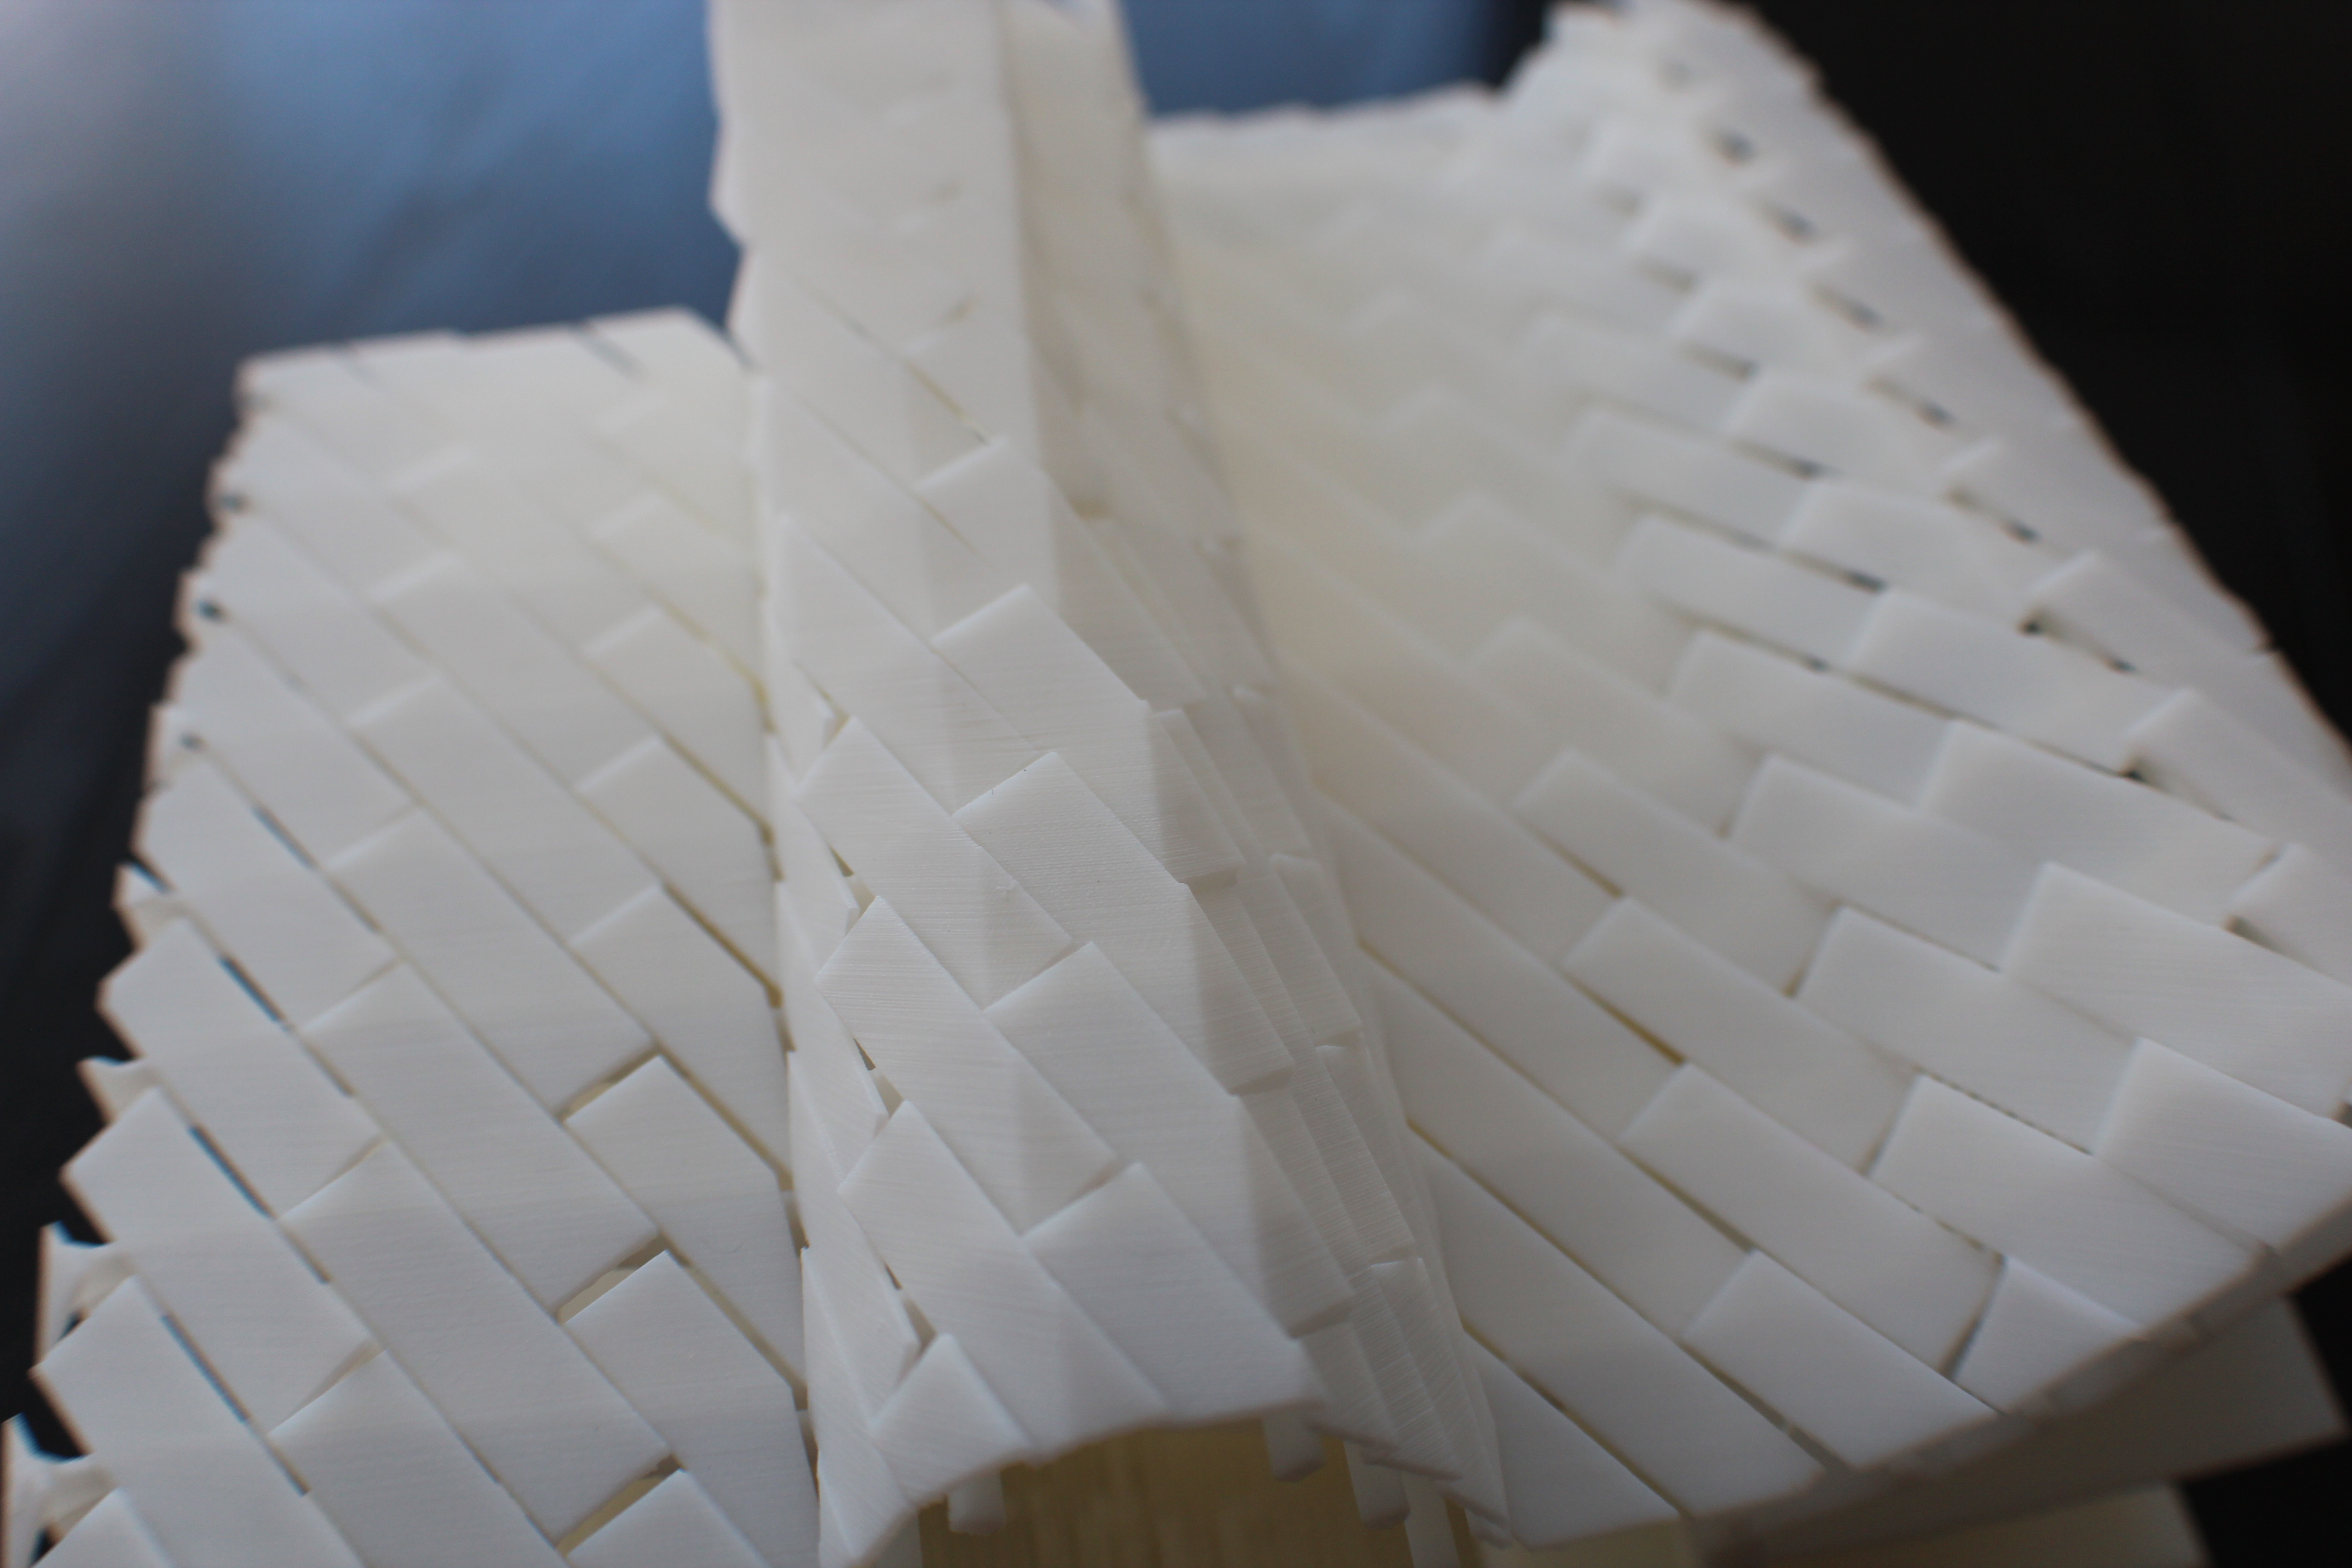 3D printed China House